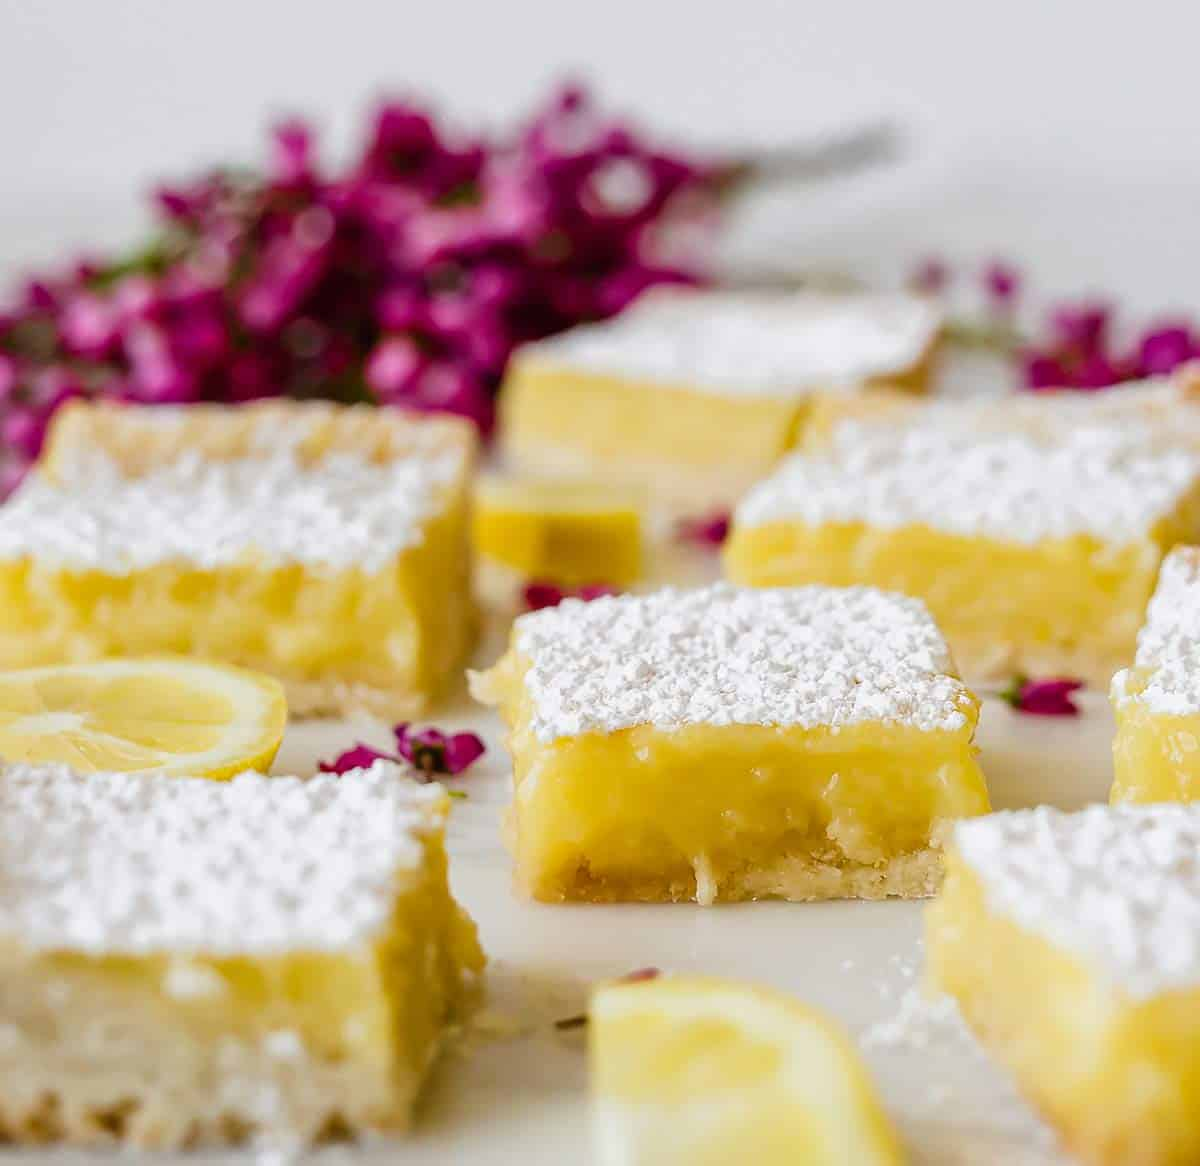 Lemon bars sitting on a piece of marble.